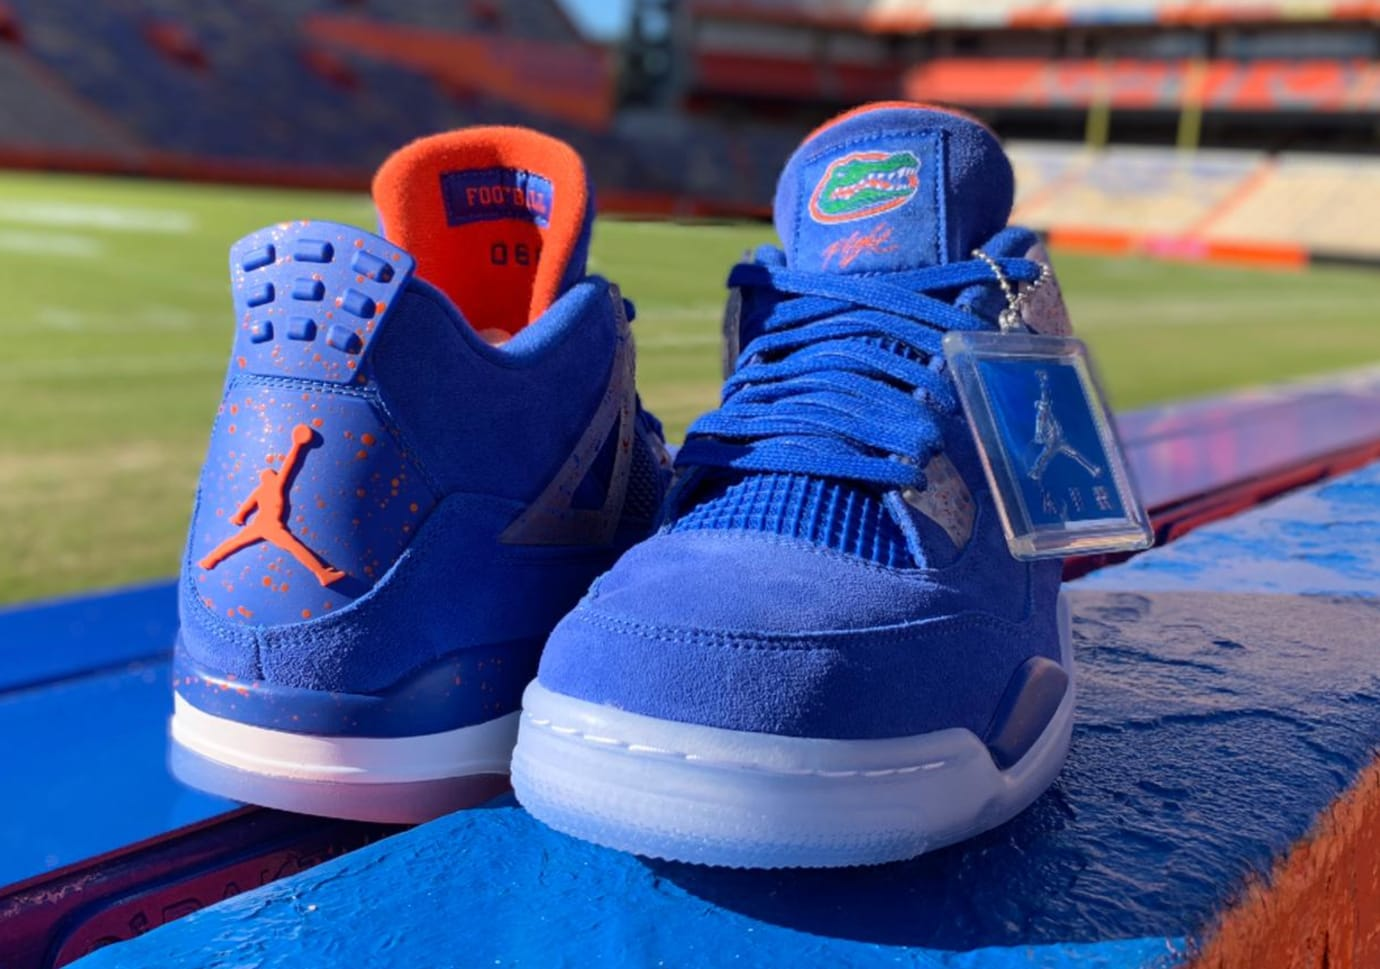 6175d160aab92 ... Air Jordan 4  Florida Gators  PE (Front and Heel)